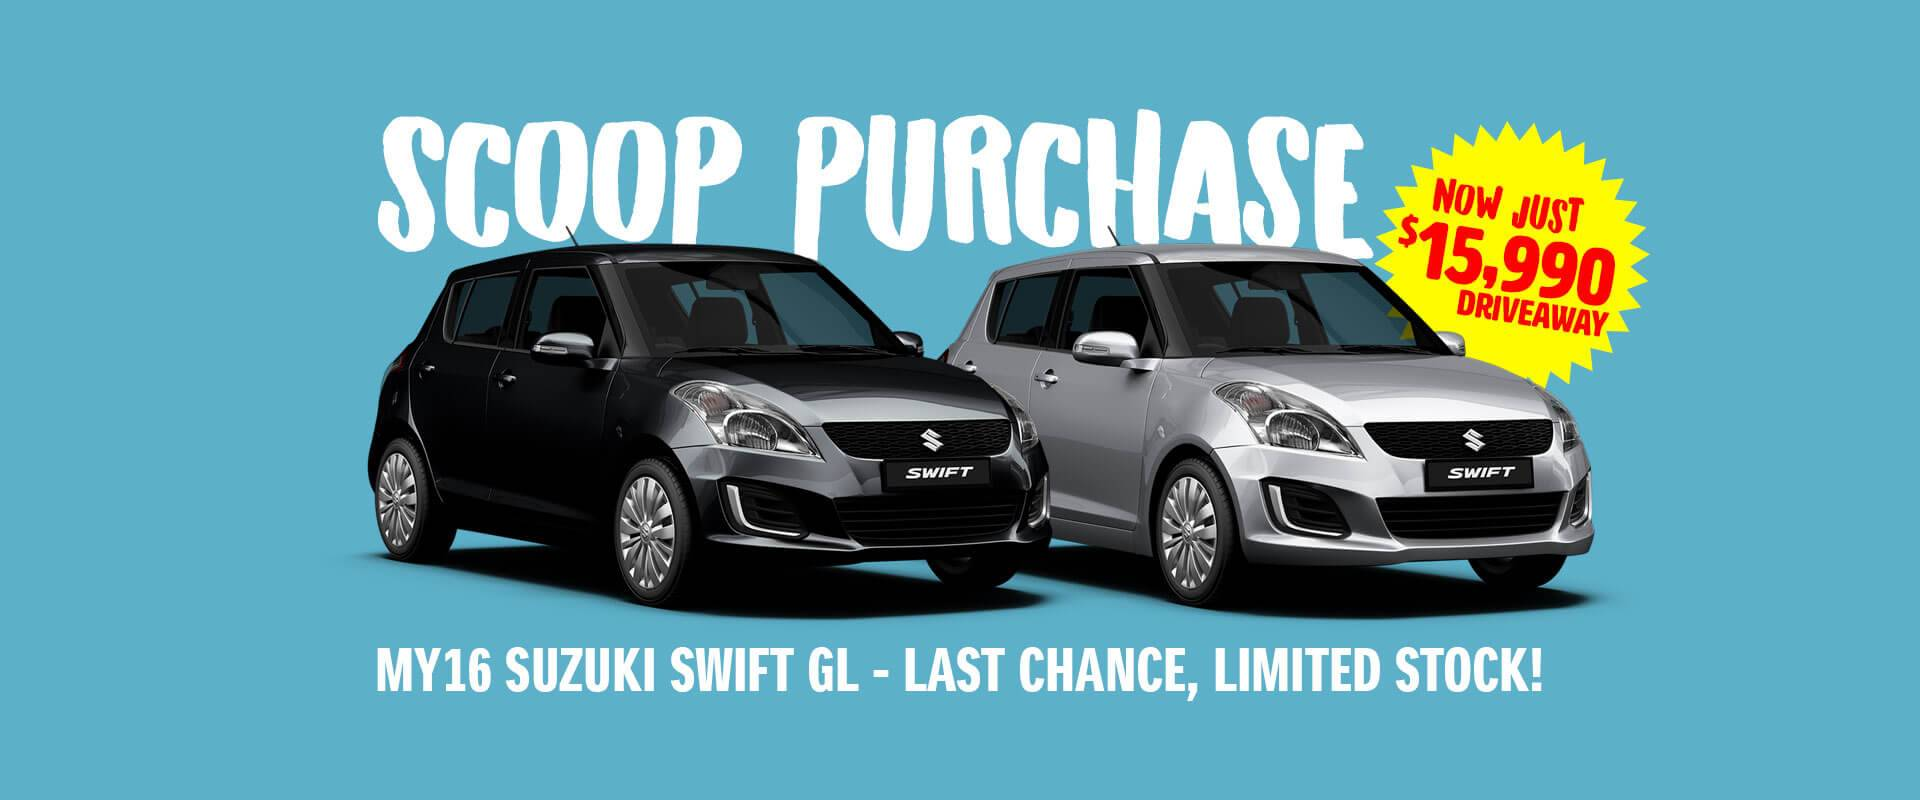 Alan Mance Suzuki - Limited Stock